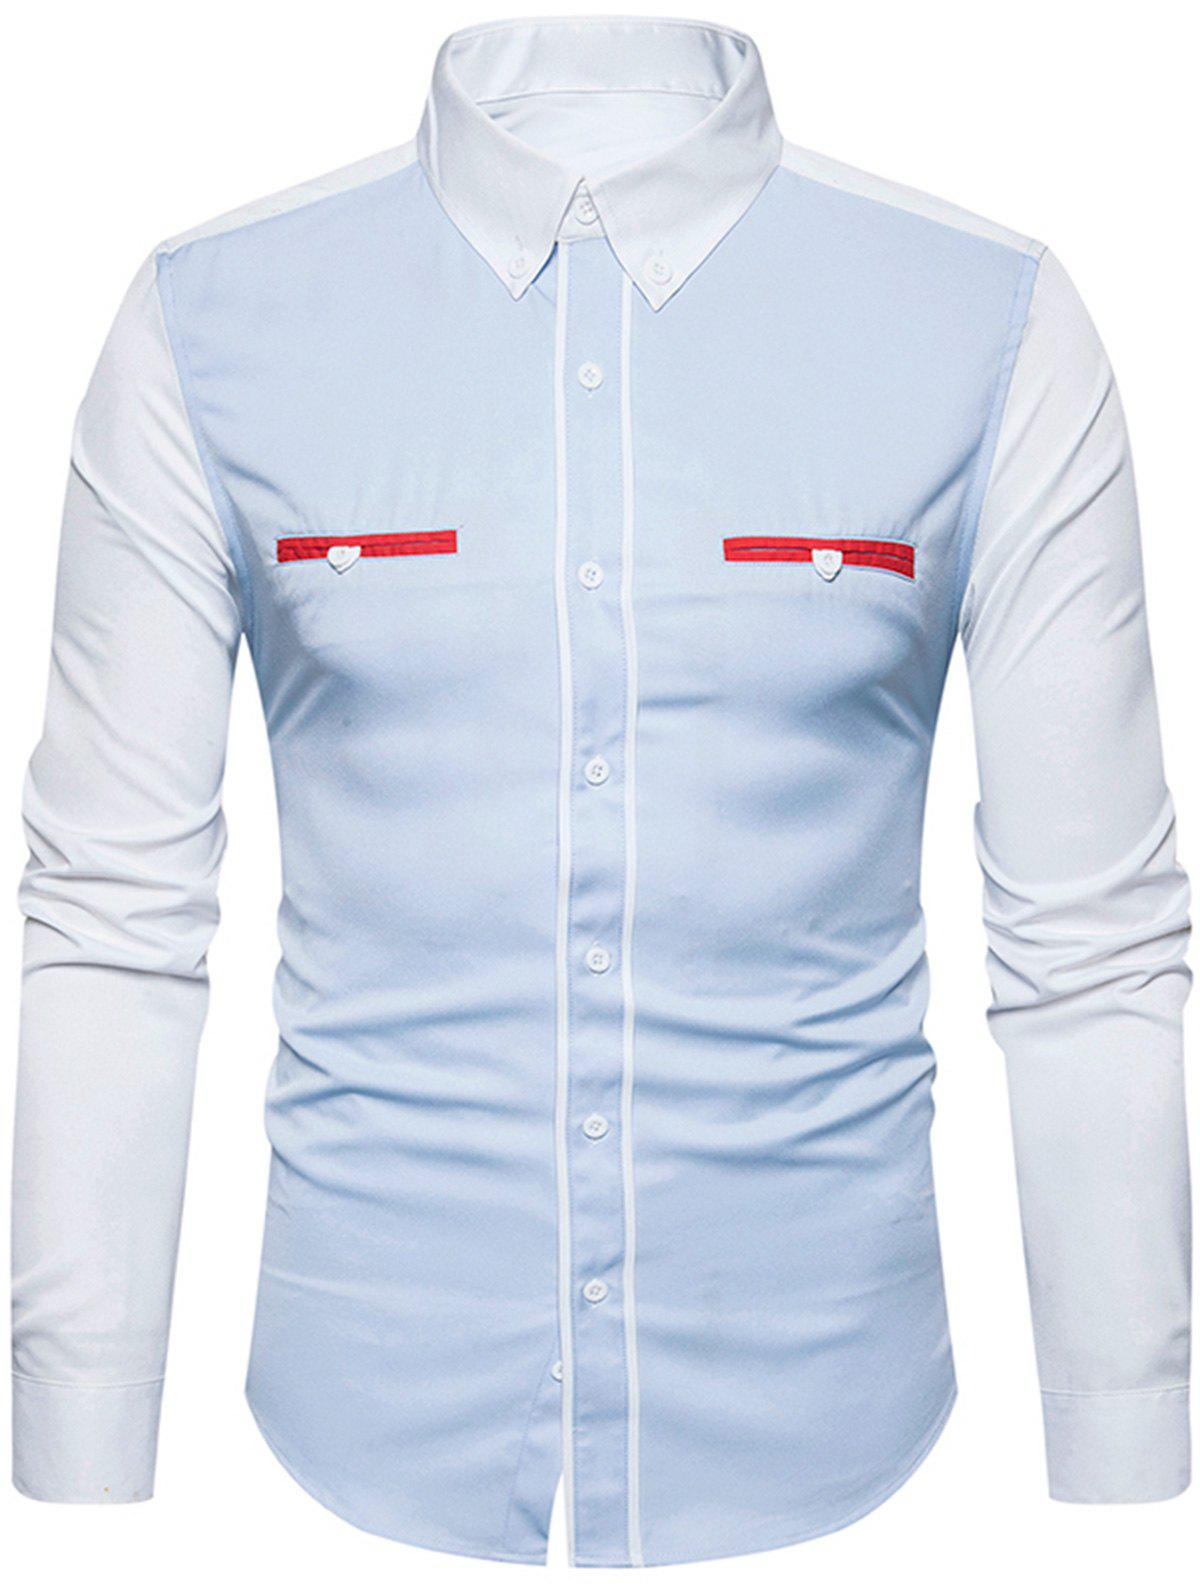 Color Block Panel Edging Button Down ShirtMEN<br><br>Size: L; Color: LIGHT BLUE; Shirts Type: Casual Shirts; Material: Cotton,Polyester; Sleeve Length: Full; Collar: Turndown Collar; Pattern Type: Solid; Weight: 0.3200kg; Package Contents: 1 x Shirt;